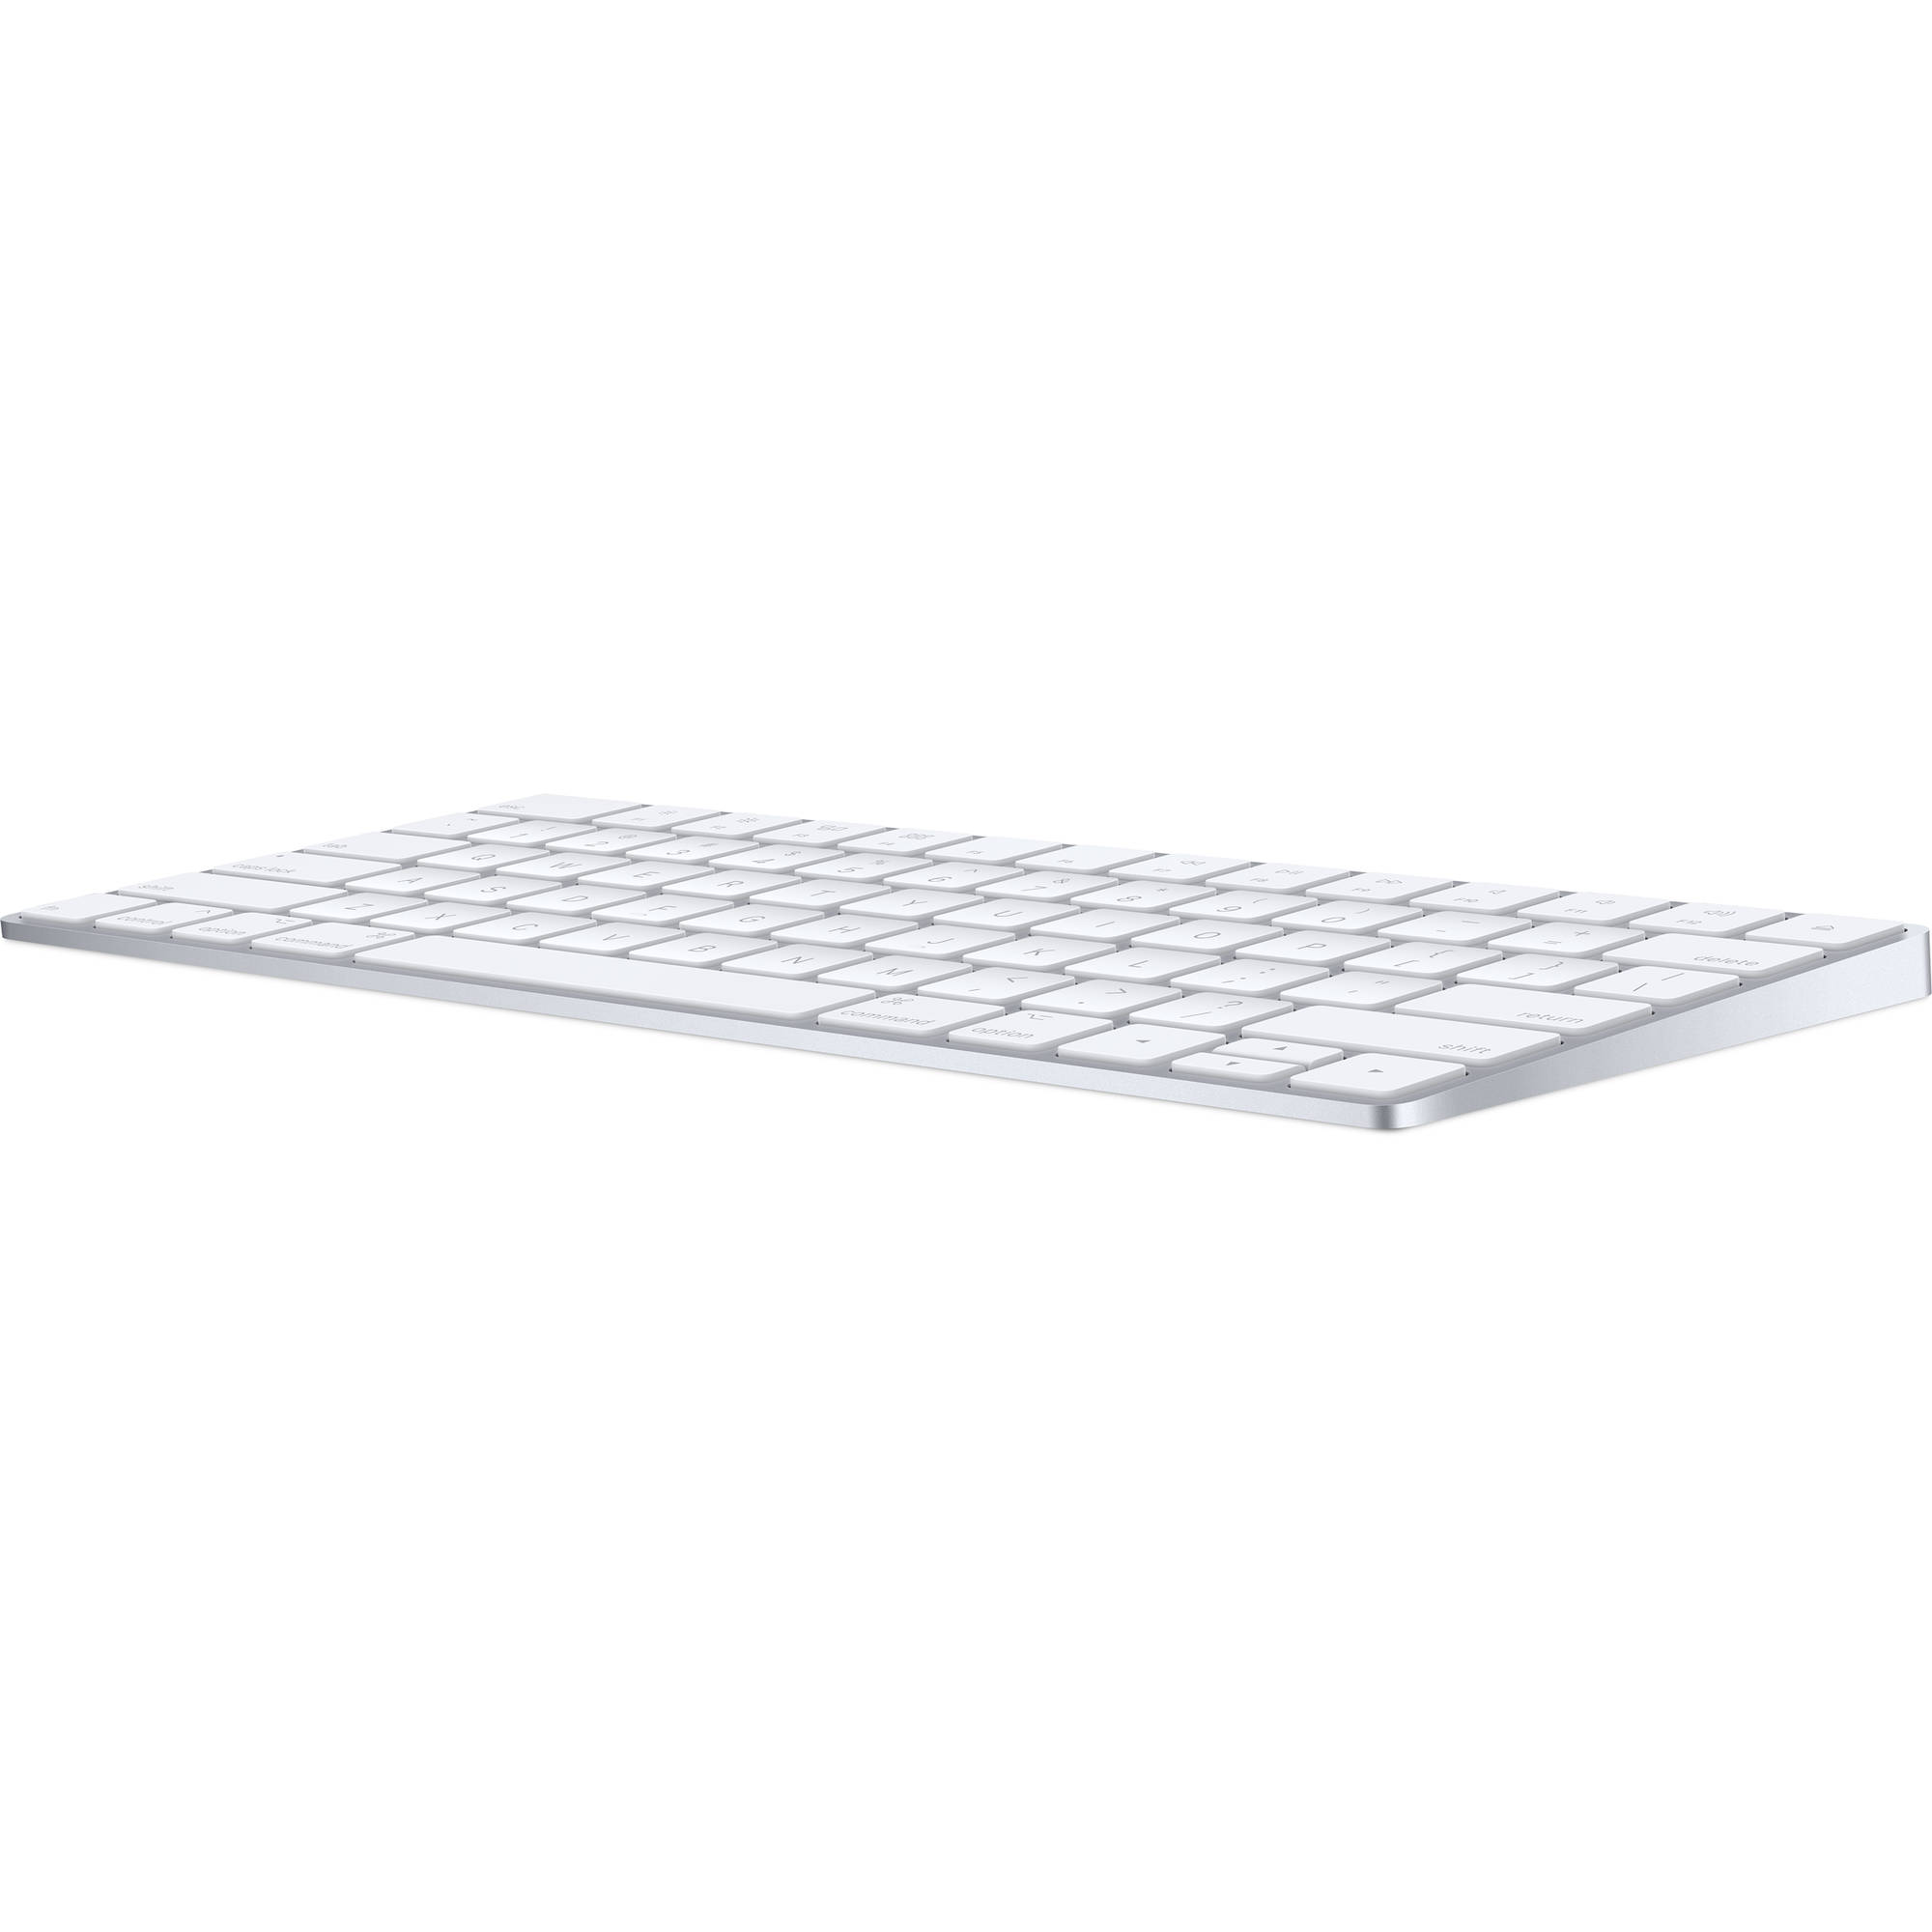 Apple Magic Keyboard Mla22ll A B Amp H Photo Video